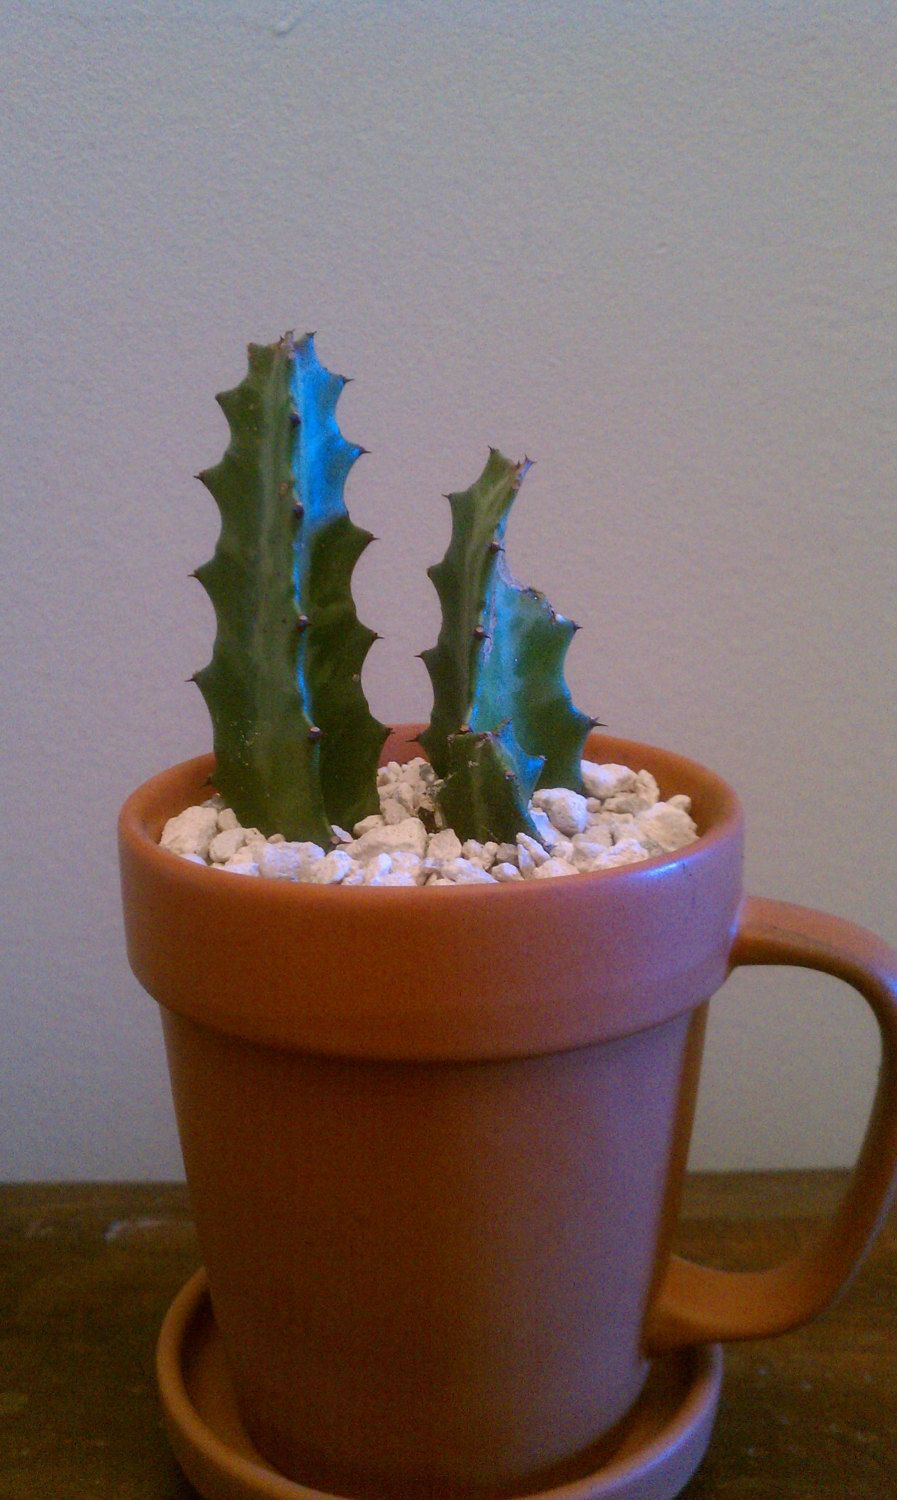 Browse Plants For Sale In Our Etsy Shop Cactus Candelabra Euphorbia Garden Green Nature Southwest Desert Pottery Etsy Small Plants Starter Plants